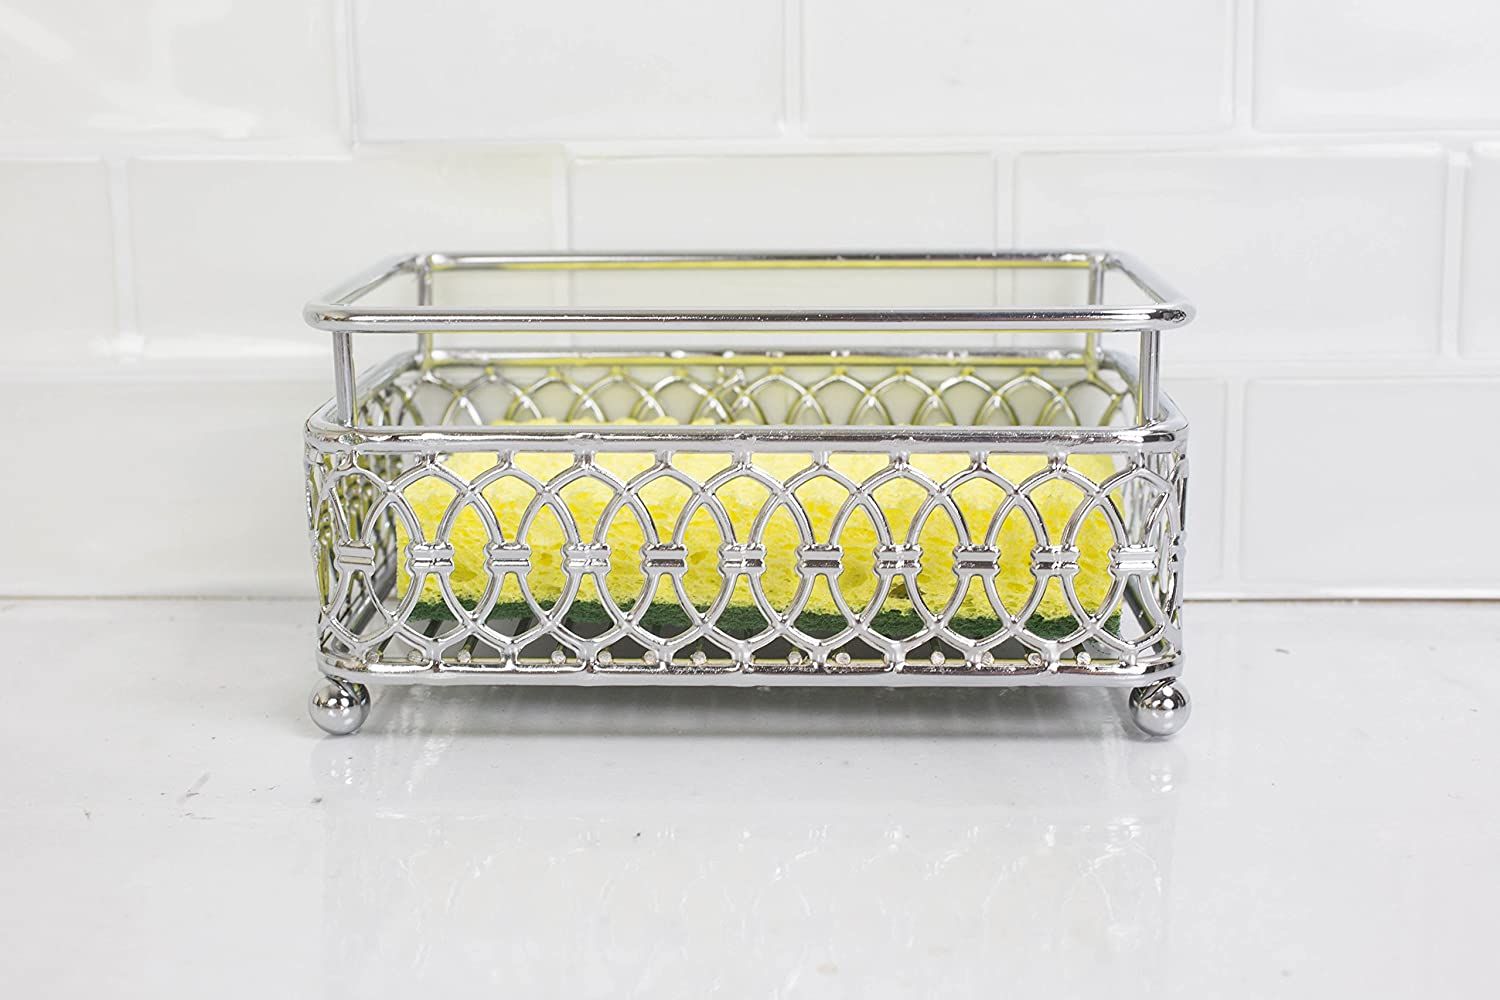 Home Basics Infinity Collection Sponge Holder Chrome HDS Trading Corp